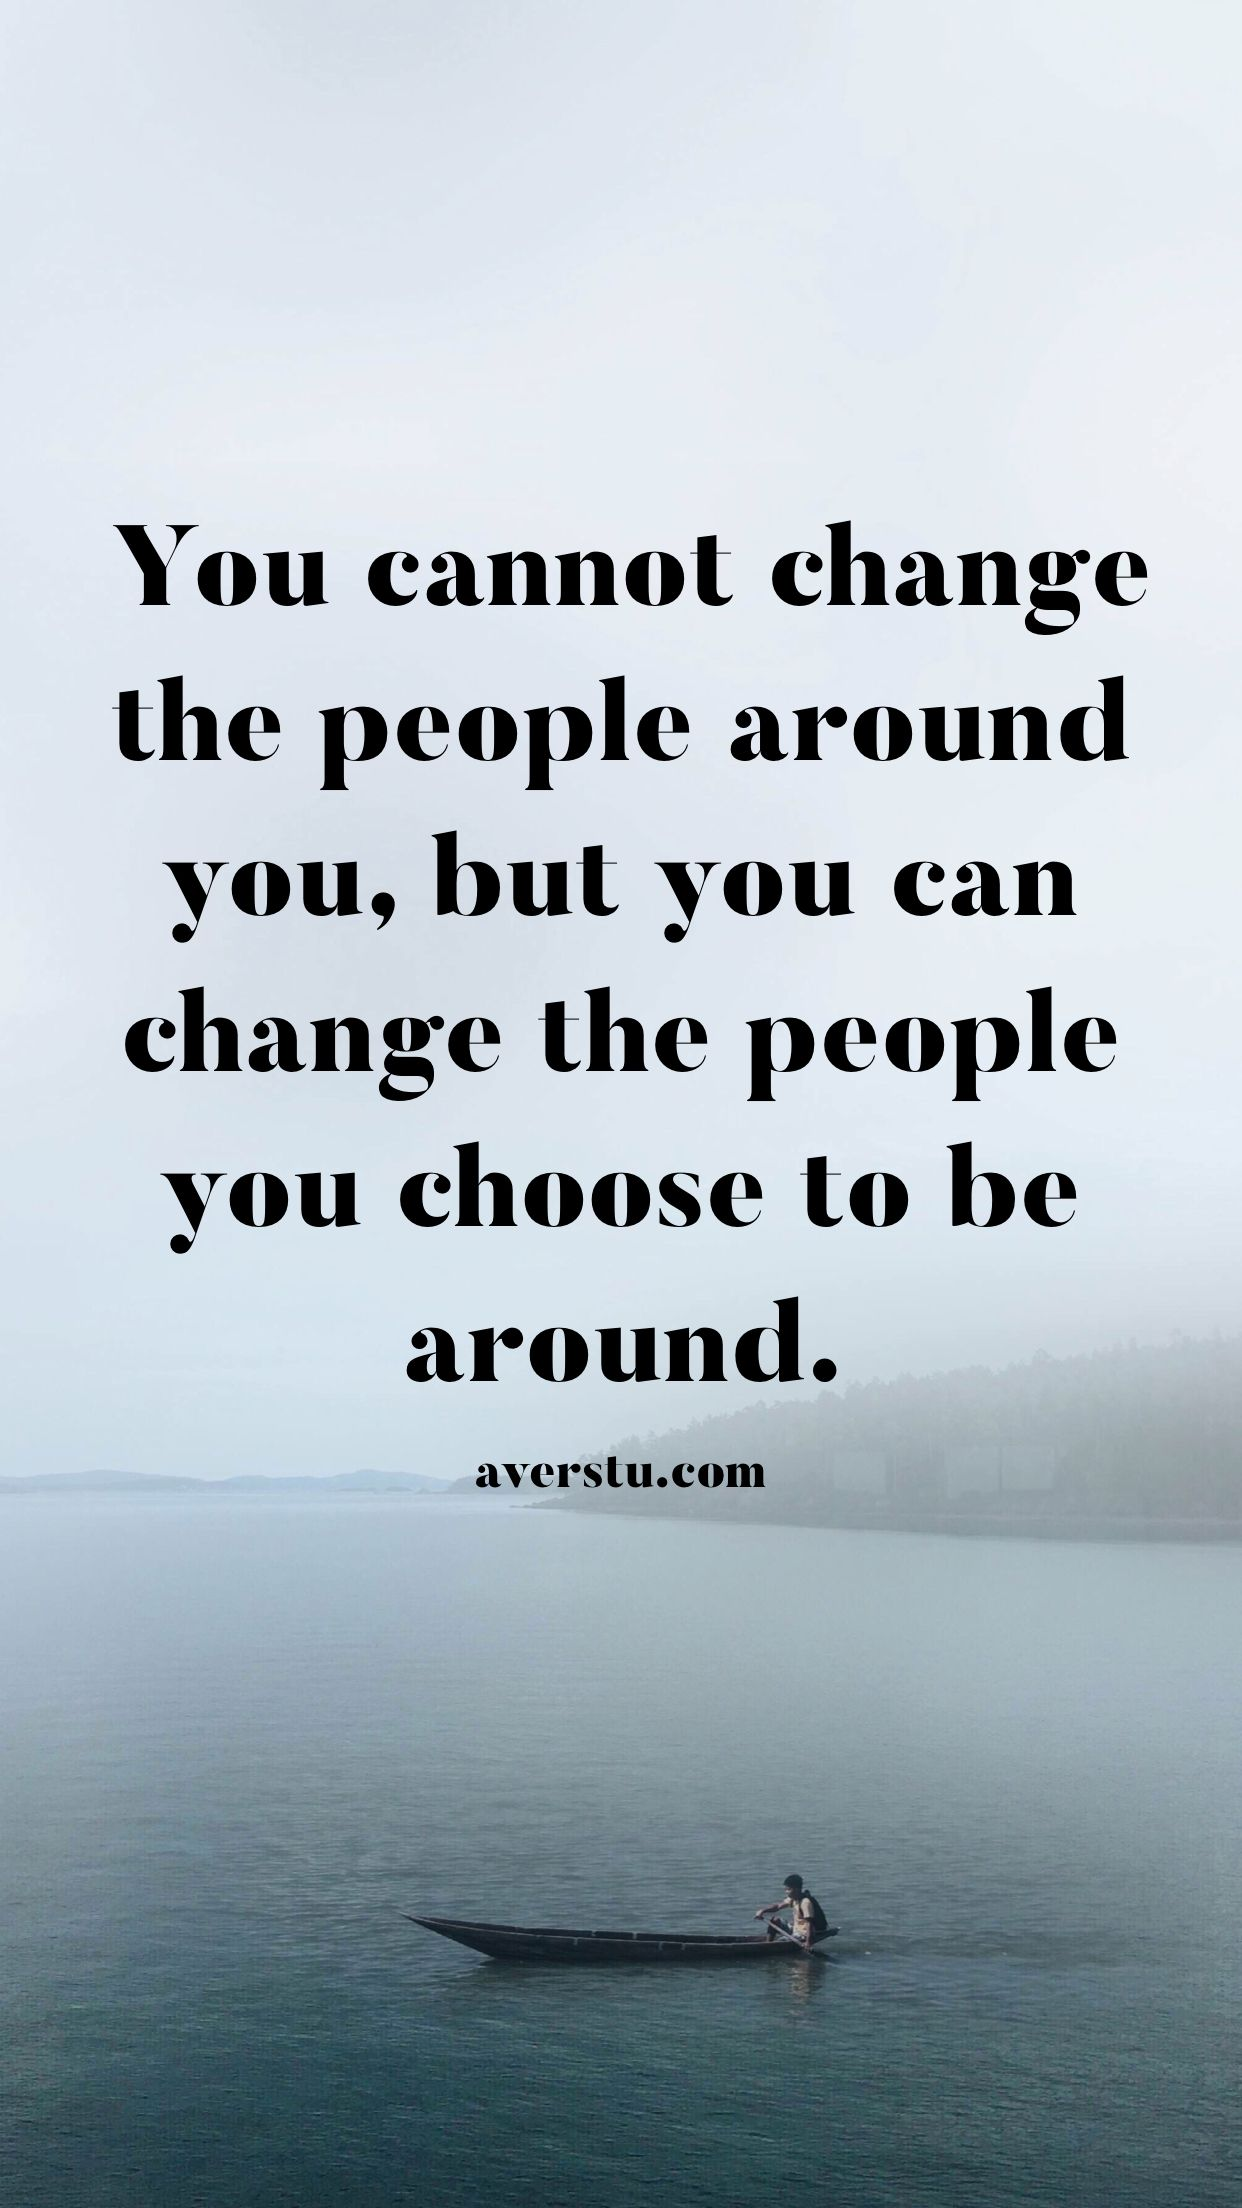 You Cannot Change The People Around You But You Can Change The